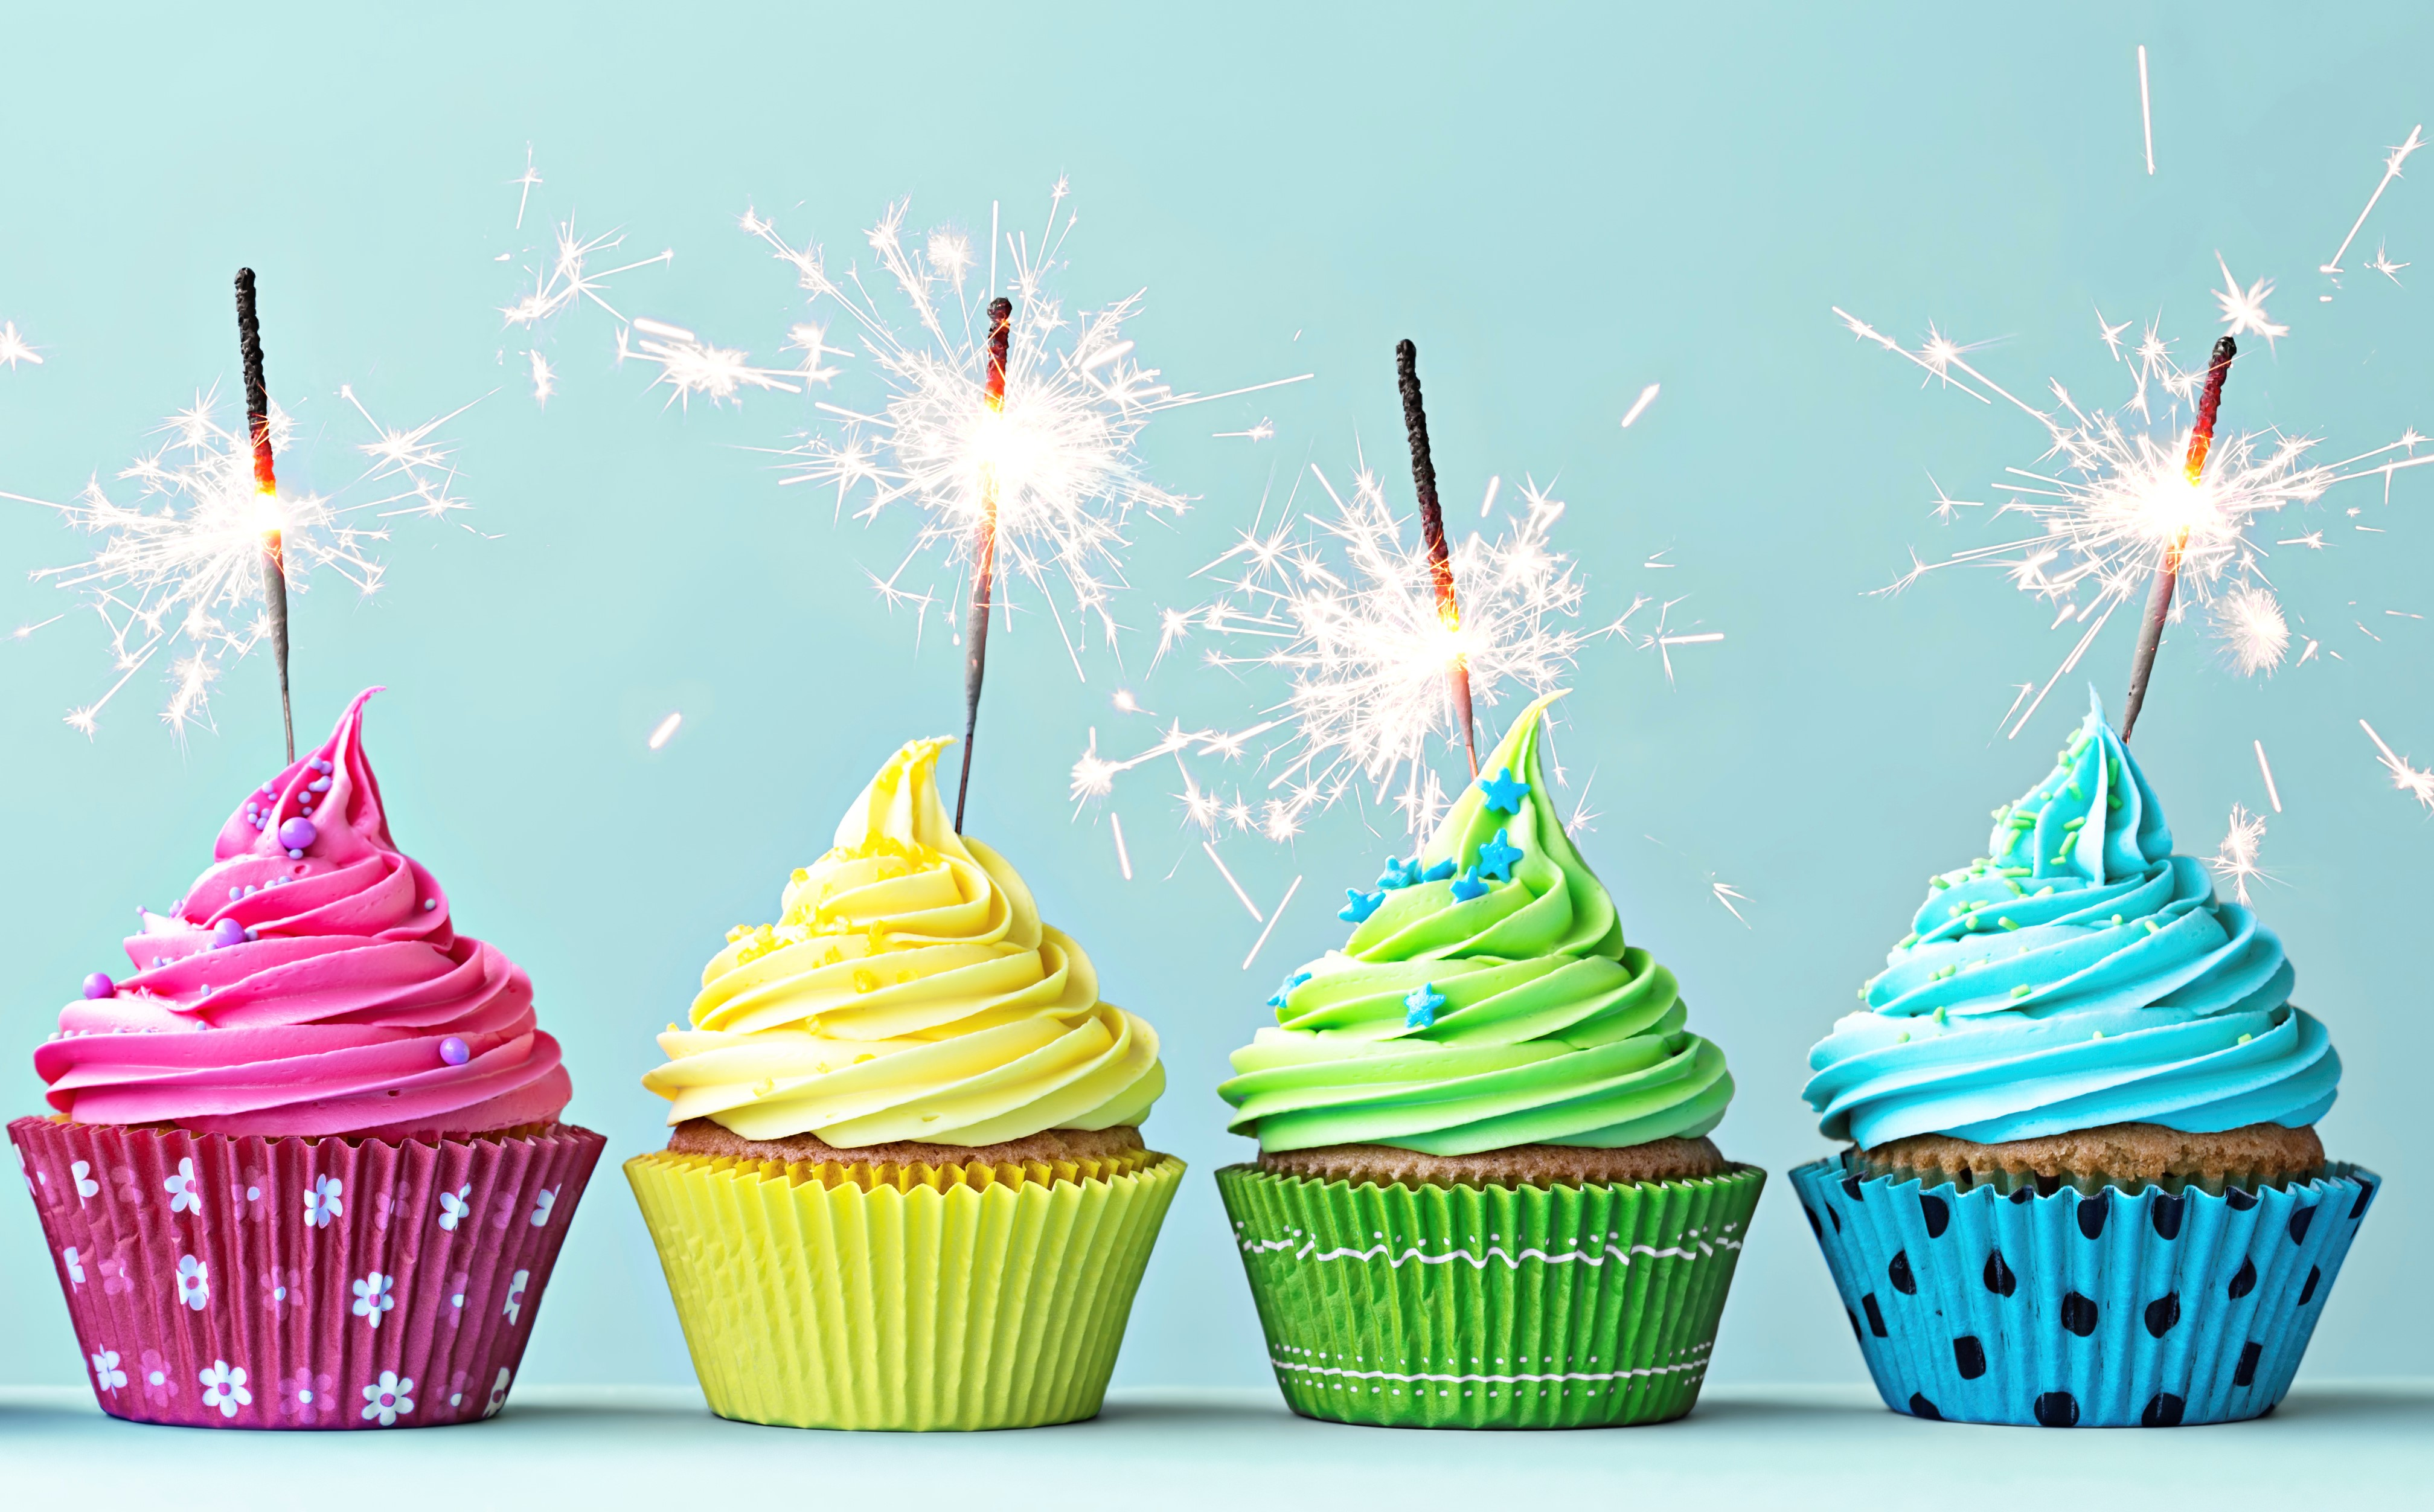 Row of colorful cupcakes with sparklers